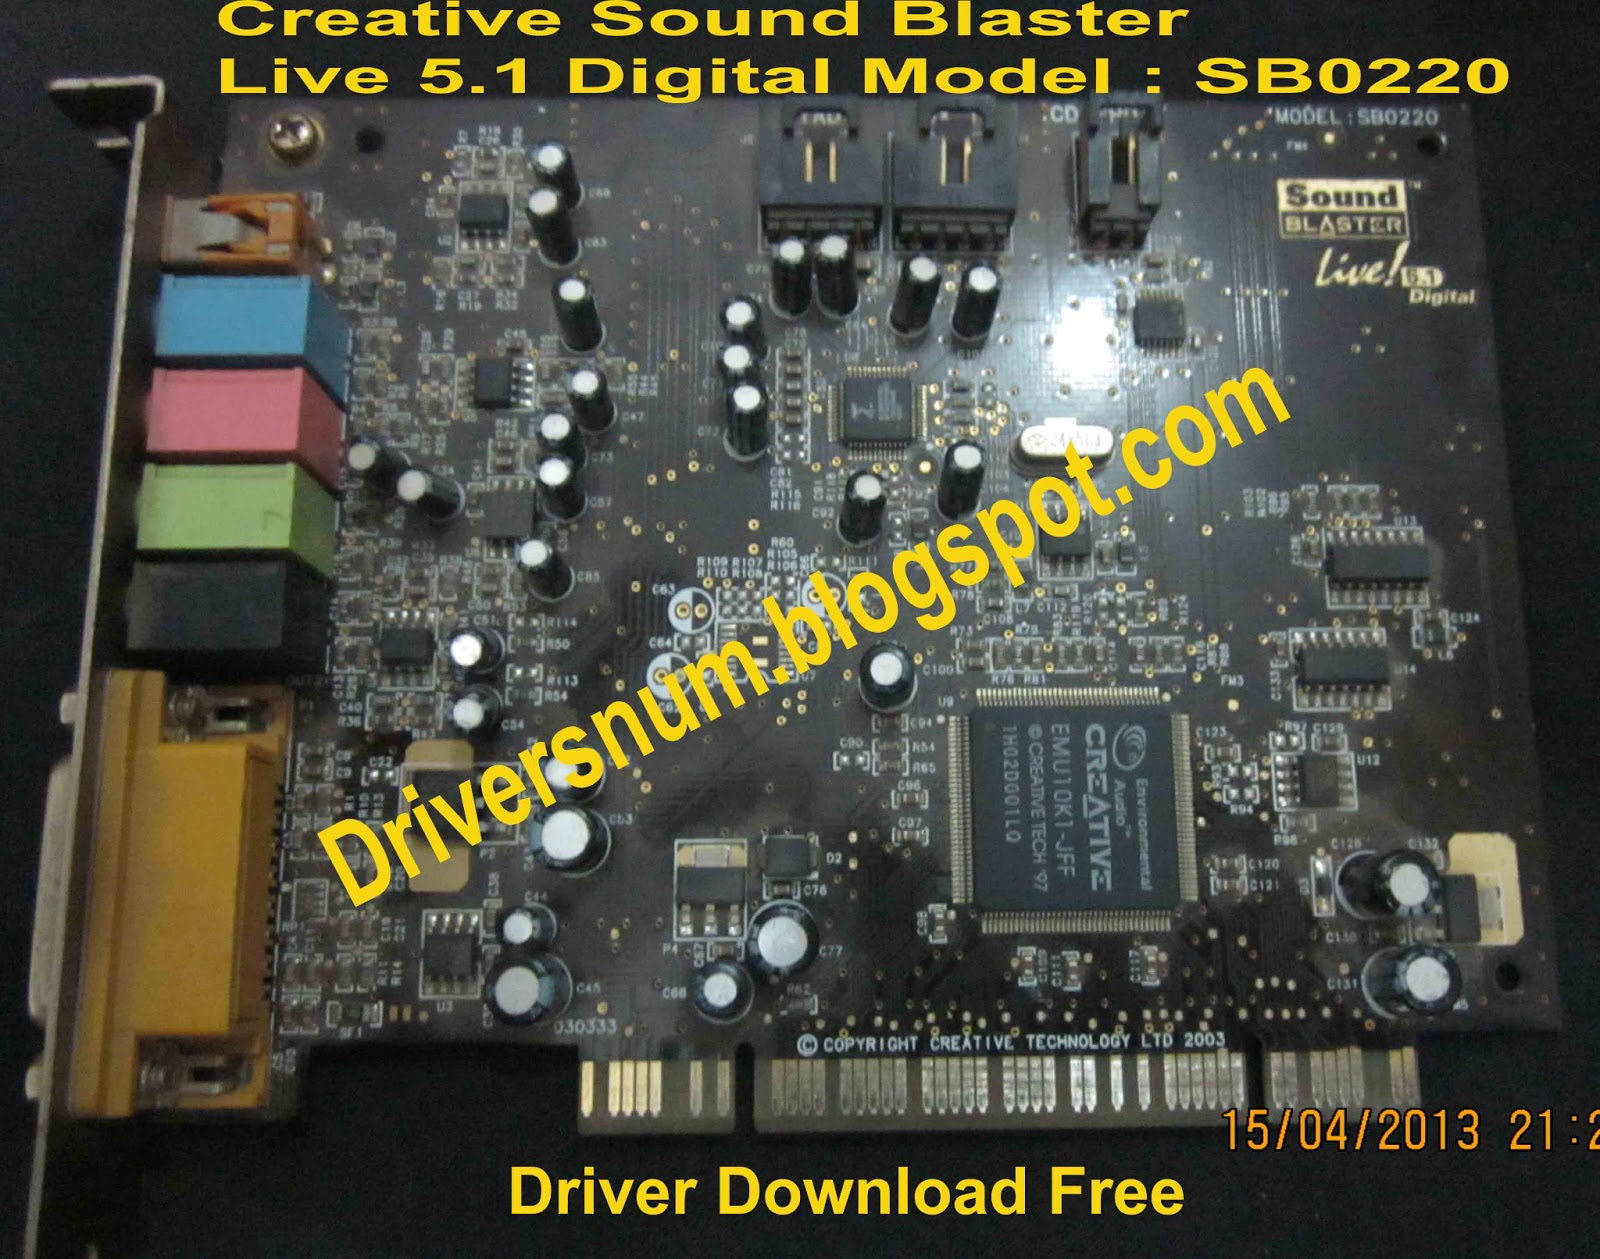 creative sound blaster live 5.1 user manual